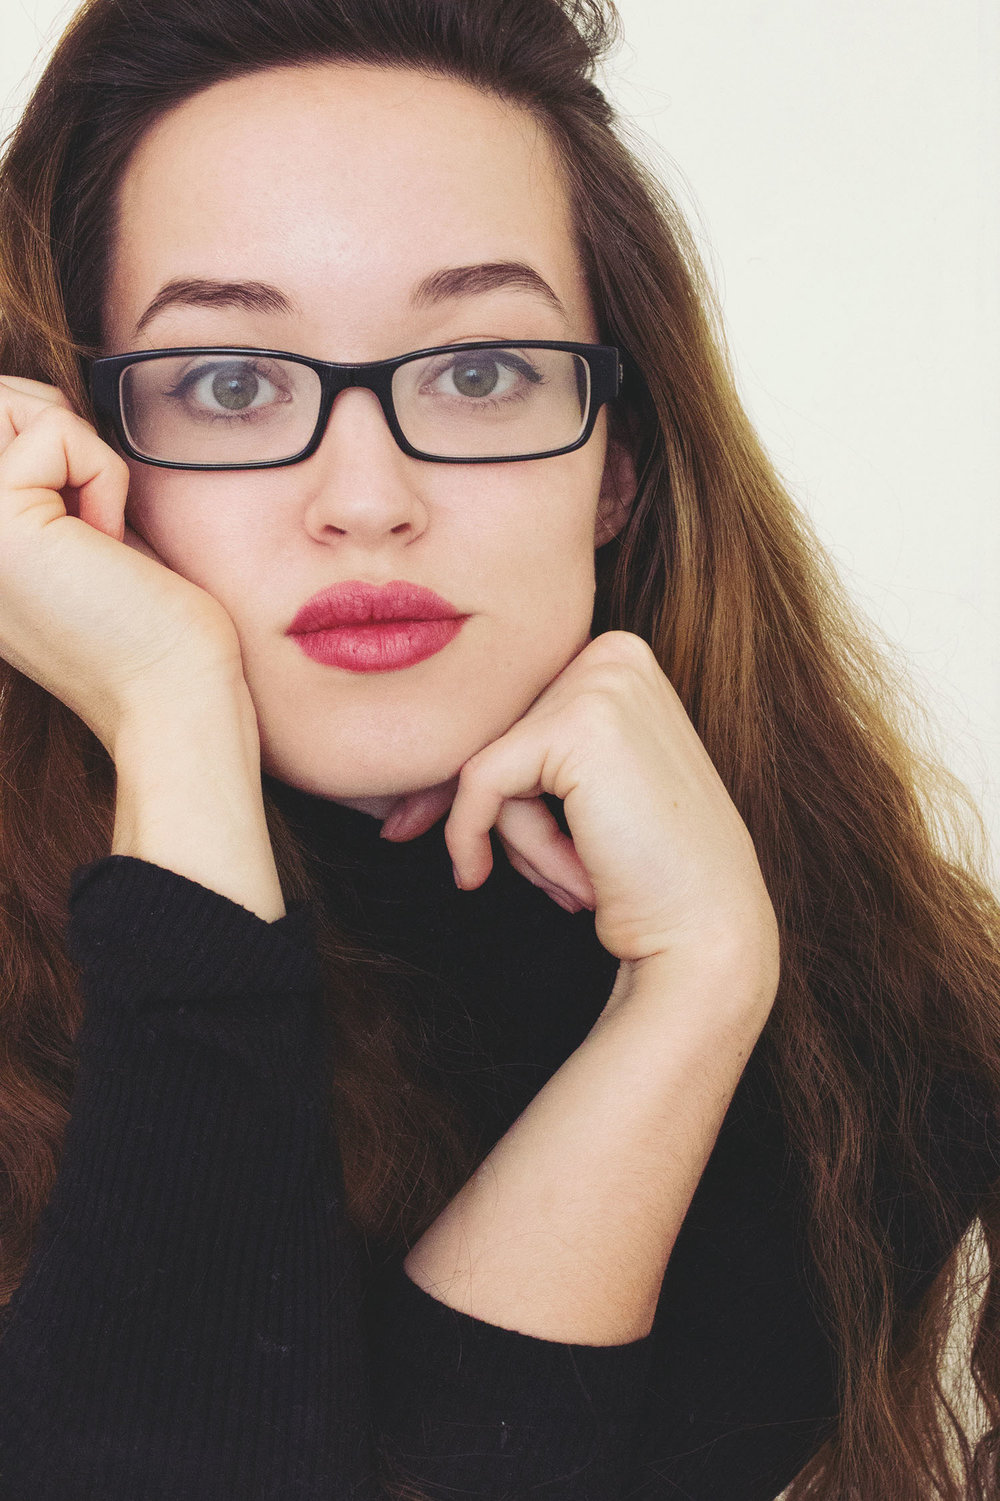 self portrait, emily joy wilson, glasses, hair, style, fashion, red lipstick